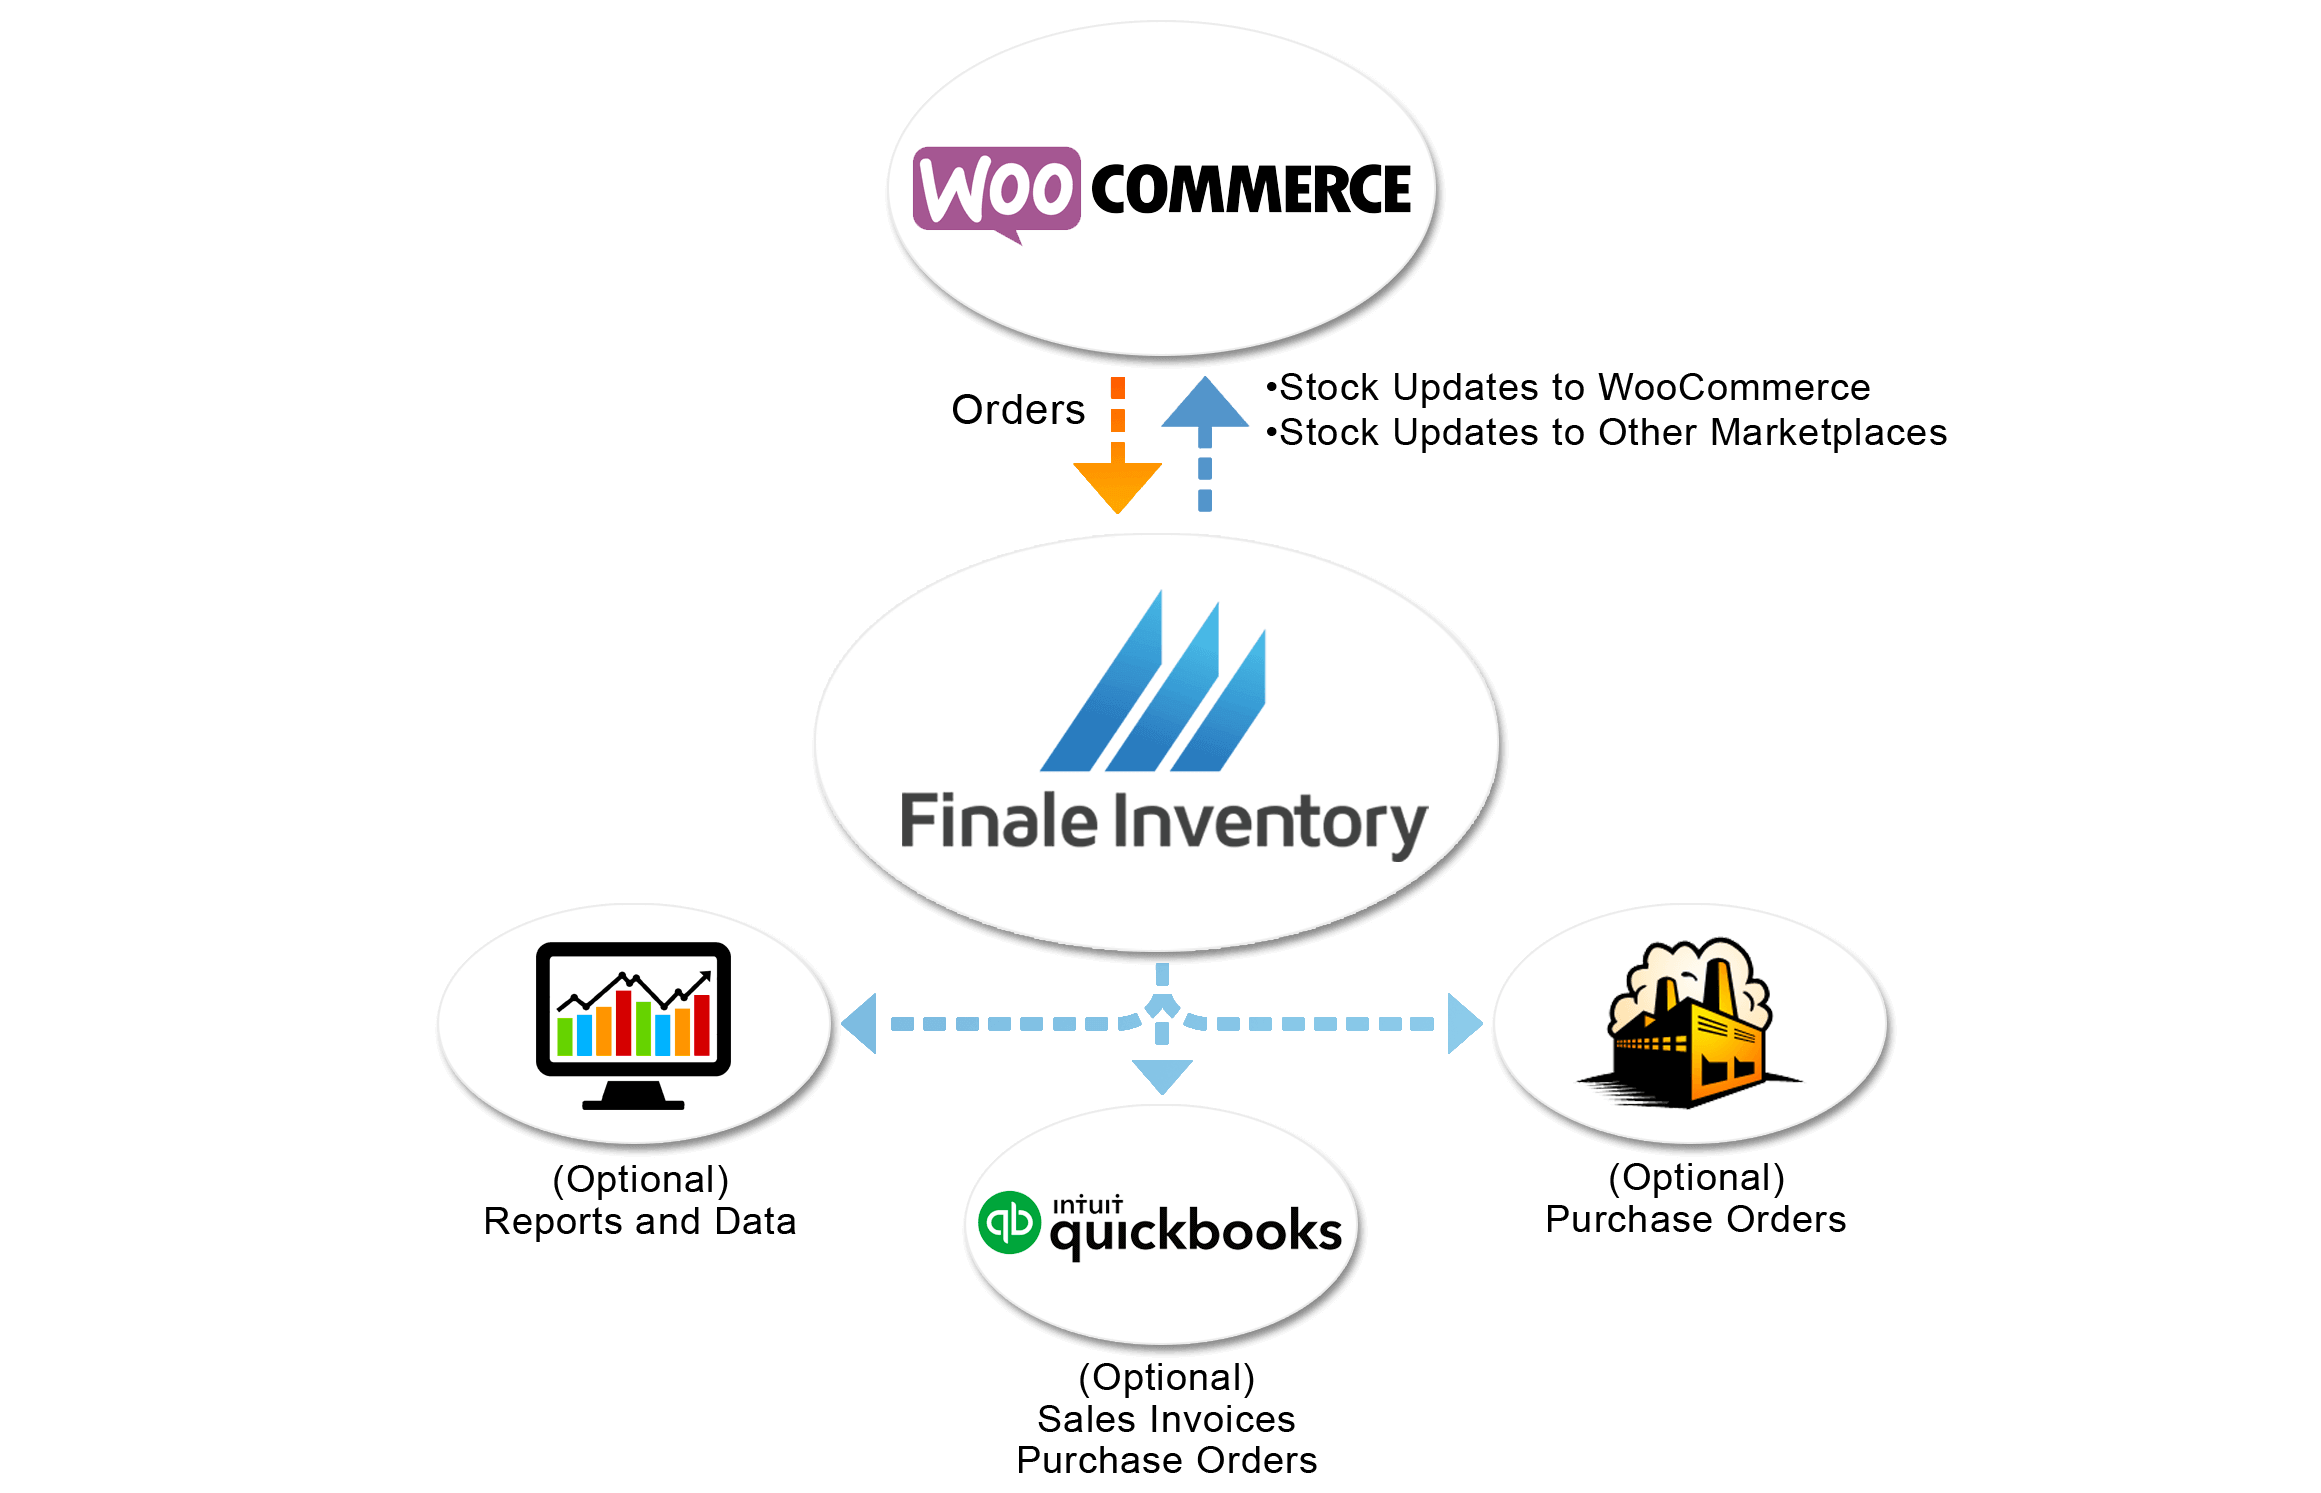 WooCommerce Inventory Management From Finale Inventory.